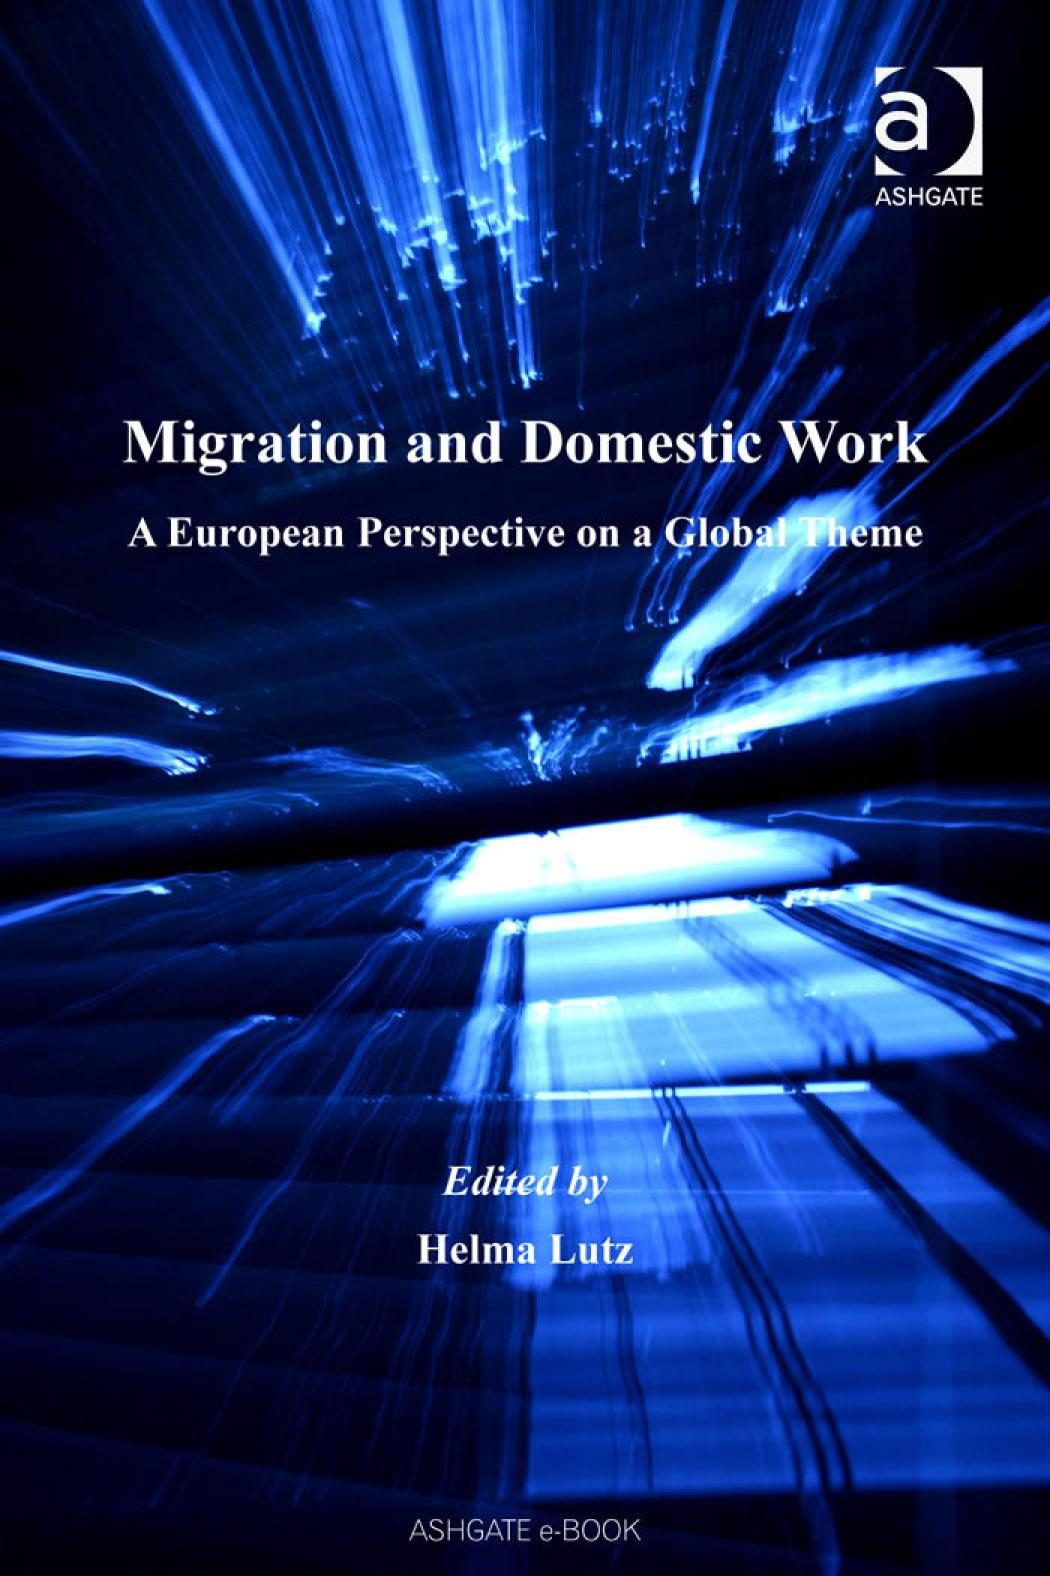 Migration and Domestic Work: A European Perspective on a Global Theme Studies in Migration and Diaspora EB9780754690603